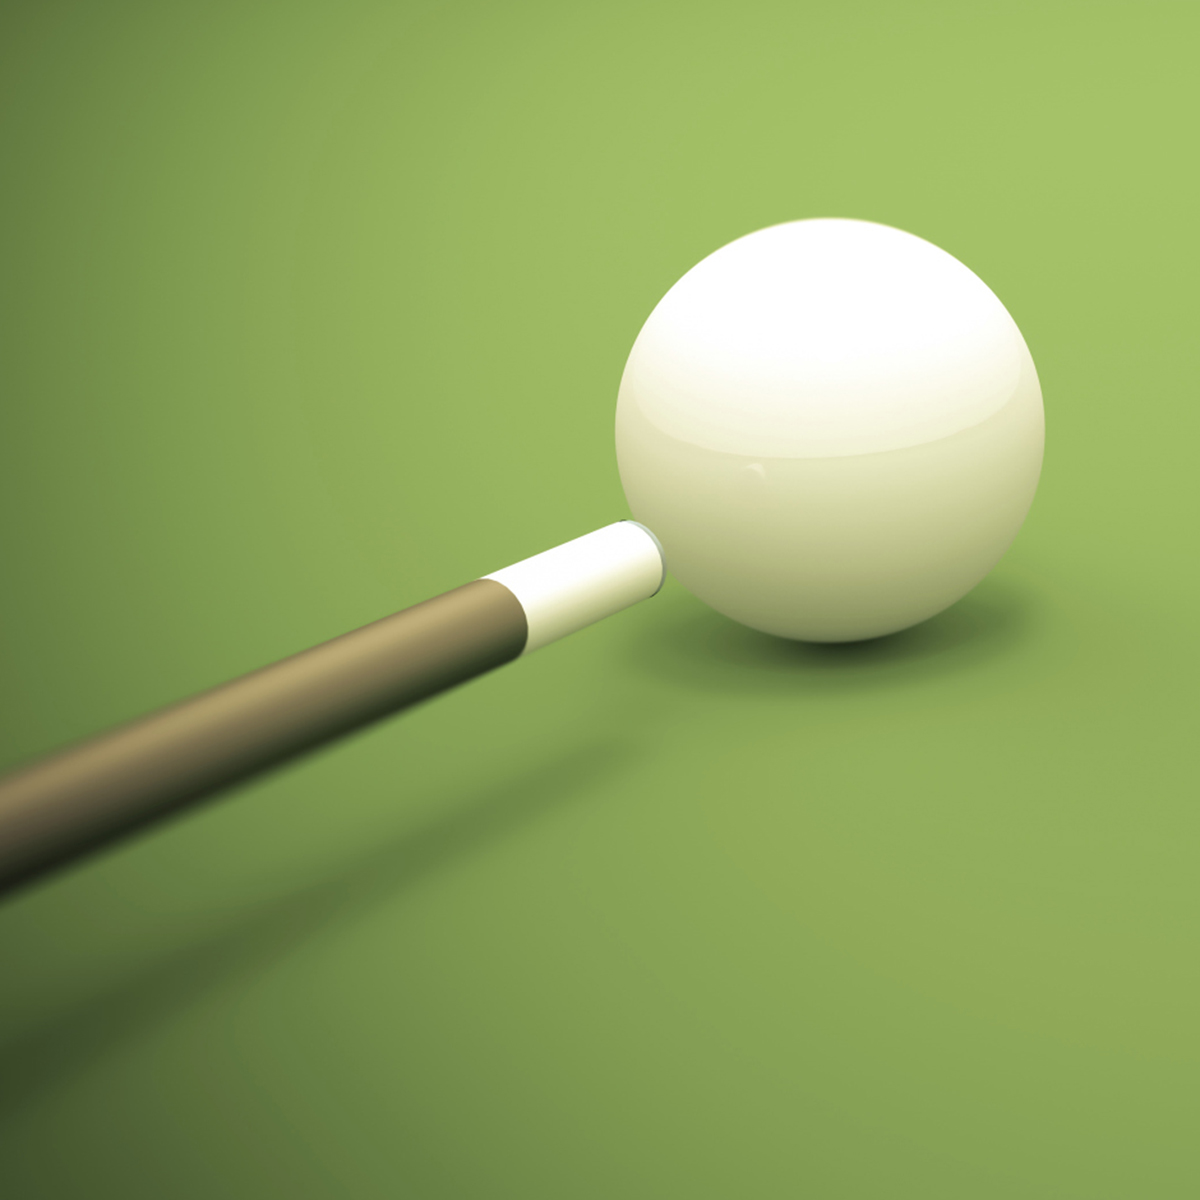 BAR BILLIARDS: Patey stars at the double